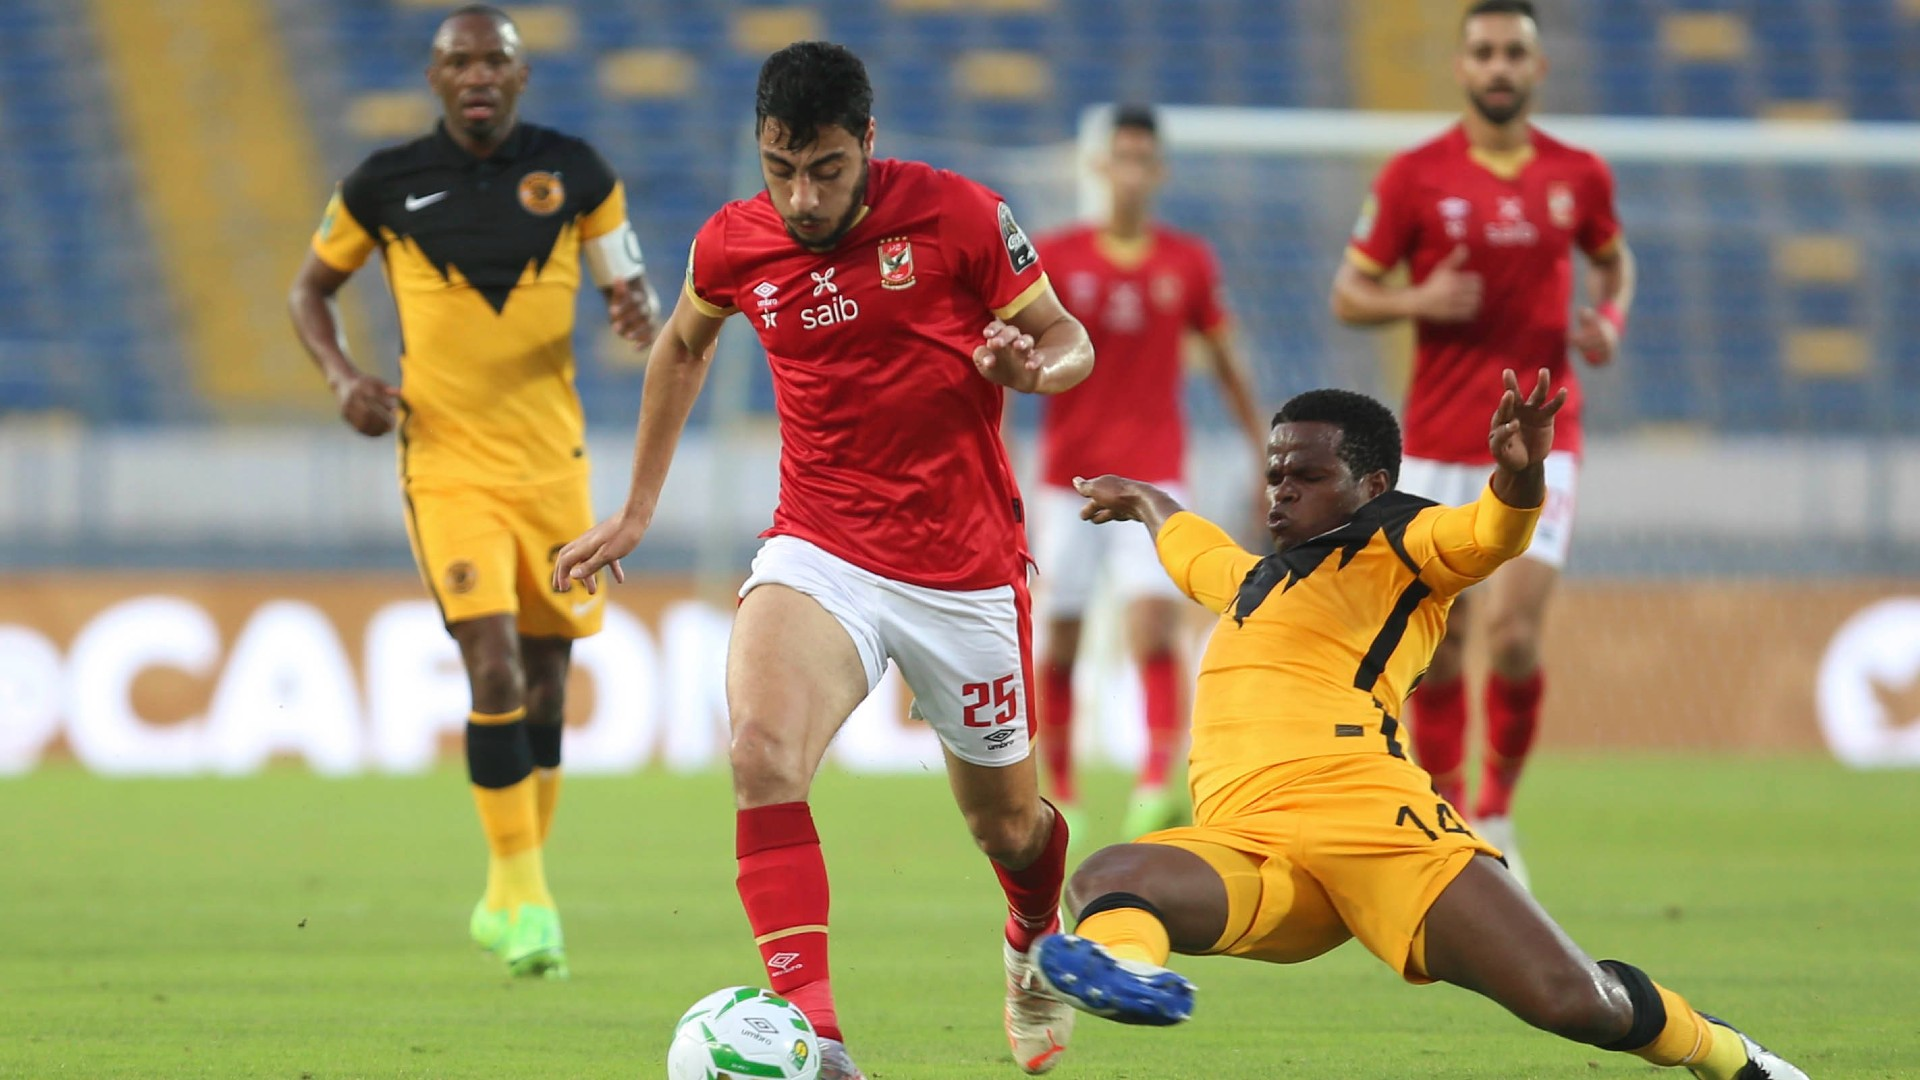 'Kaizer Chiefs have very limited resources' – Egypt great Ahmed Hassan questions Amakhosi